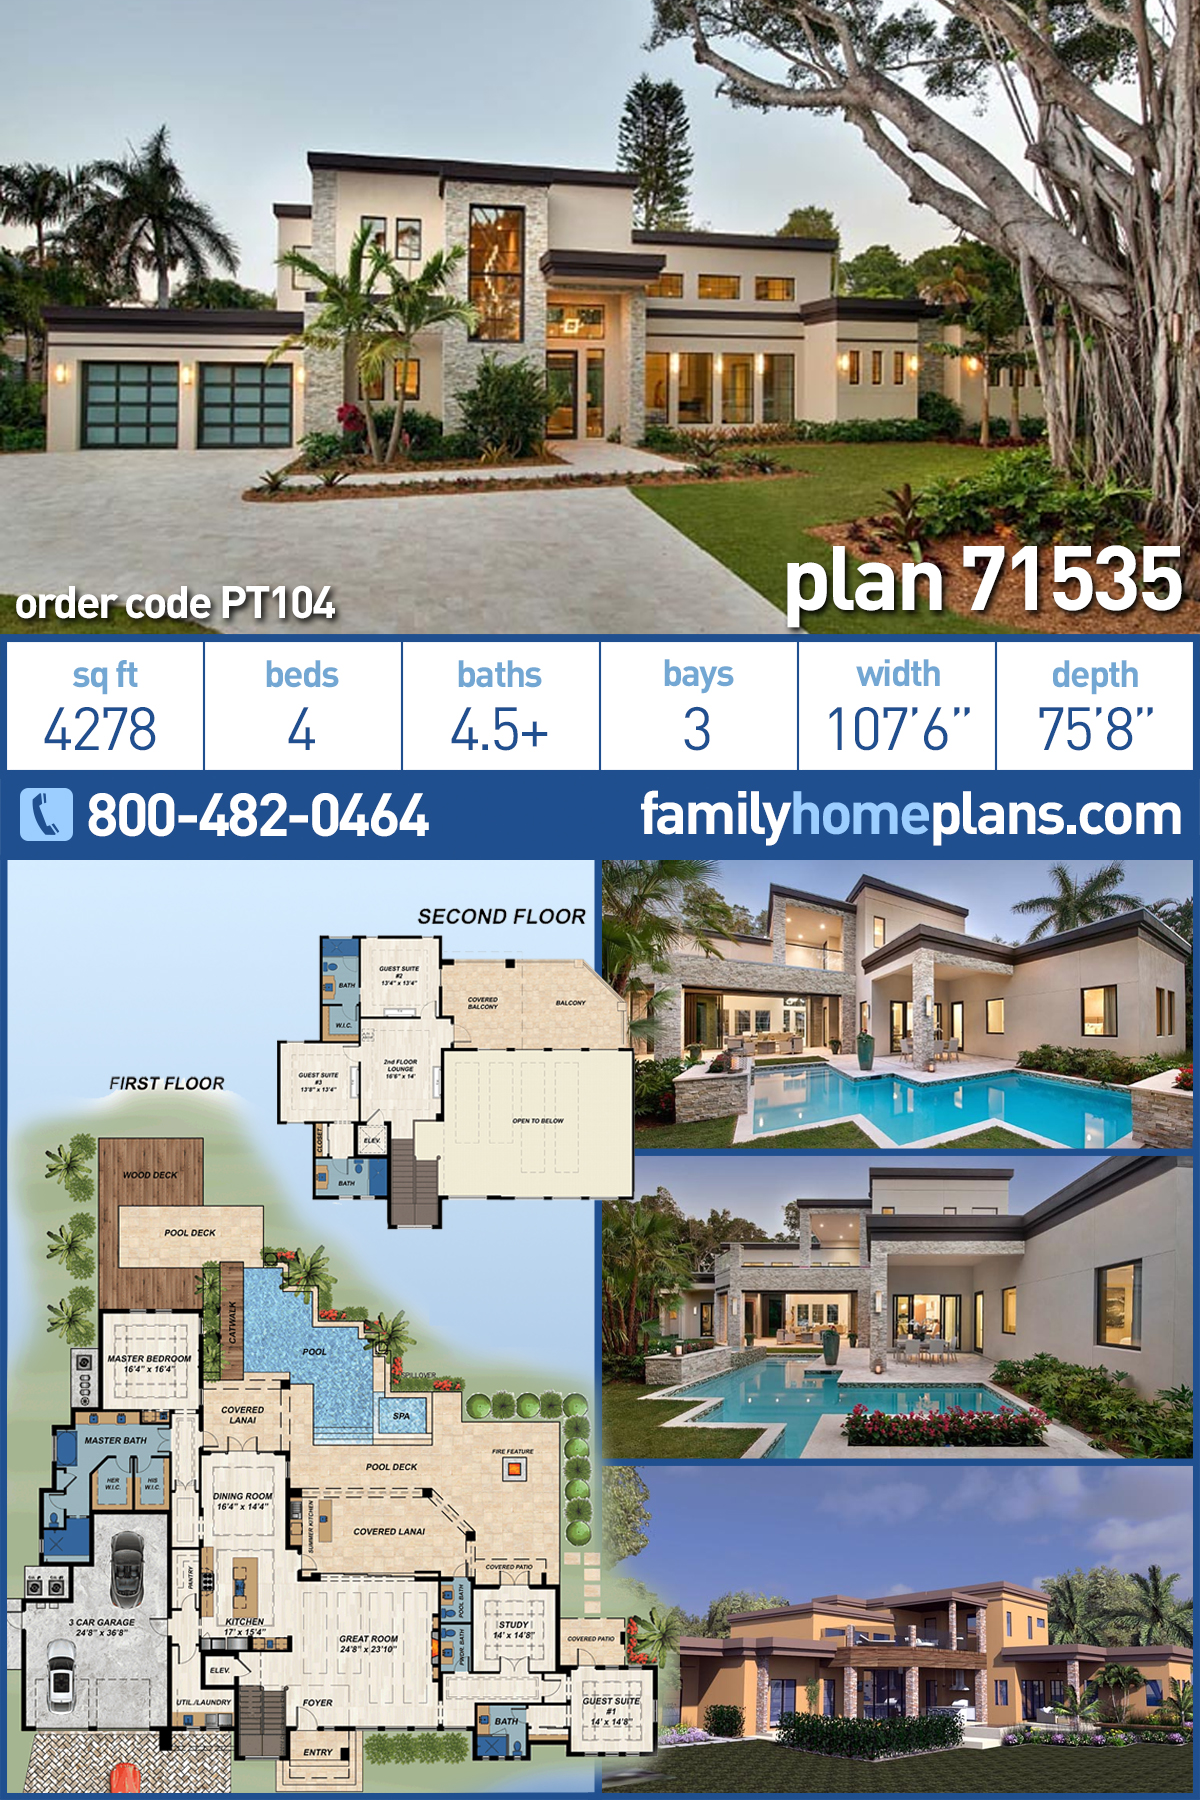 Contemporary , Modern House Plan 71535 with 4 Beds, 6 Baths, 3 Car Garage